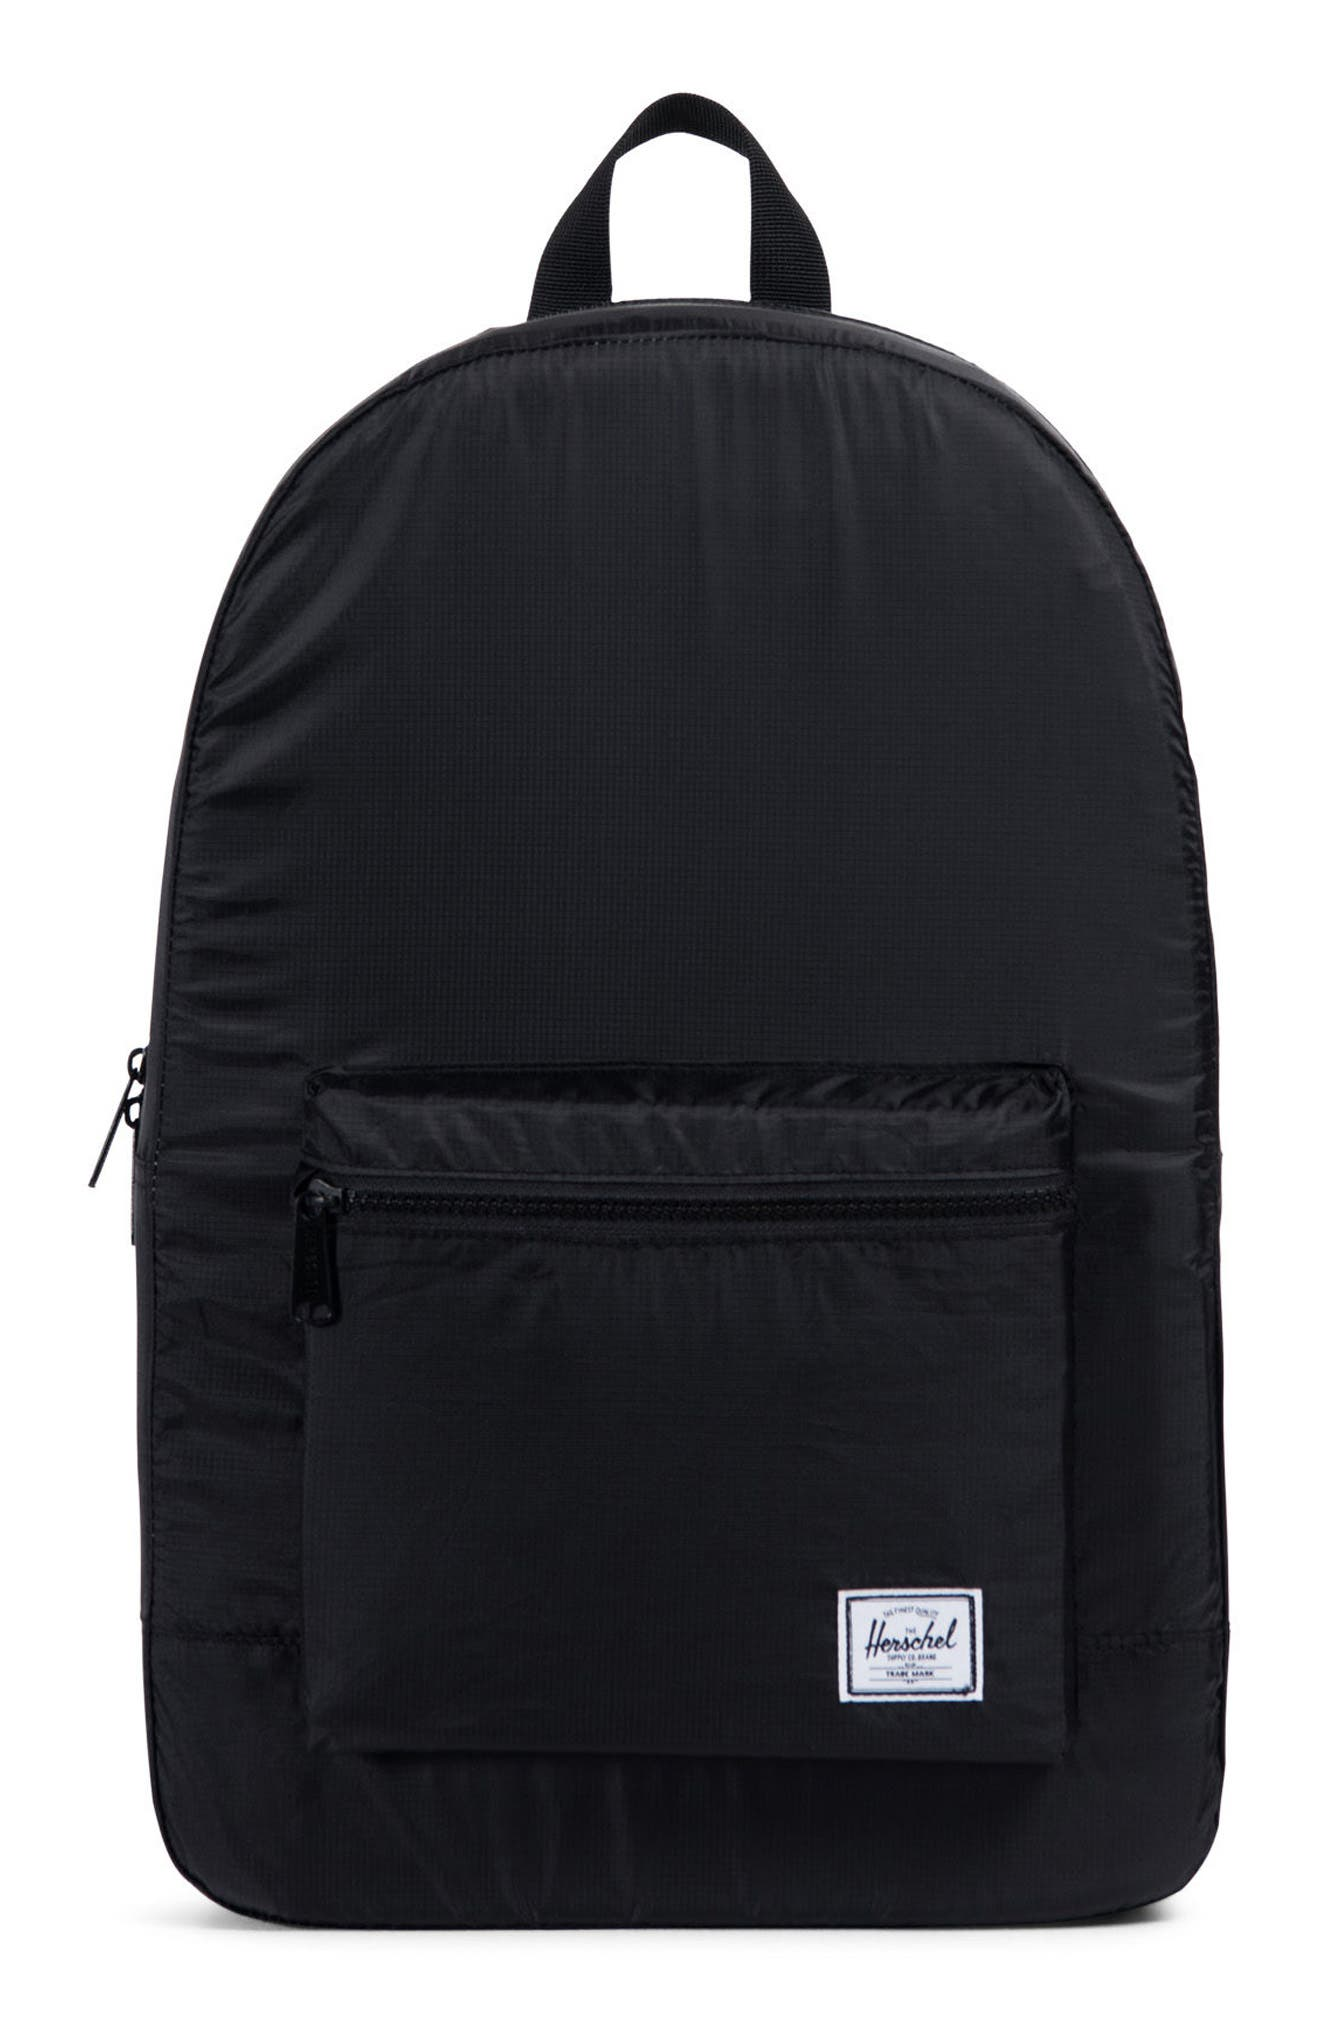 Packable Daypack,                             Main thumbnail 1, color,                             001